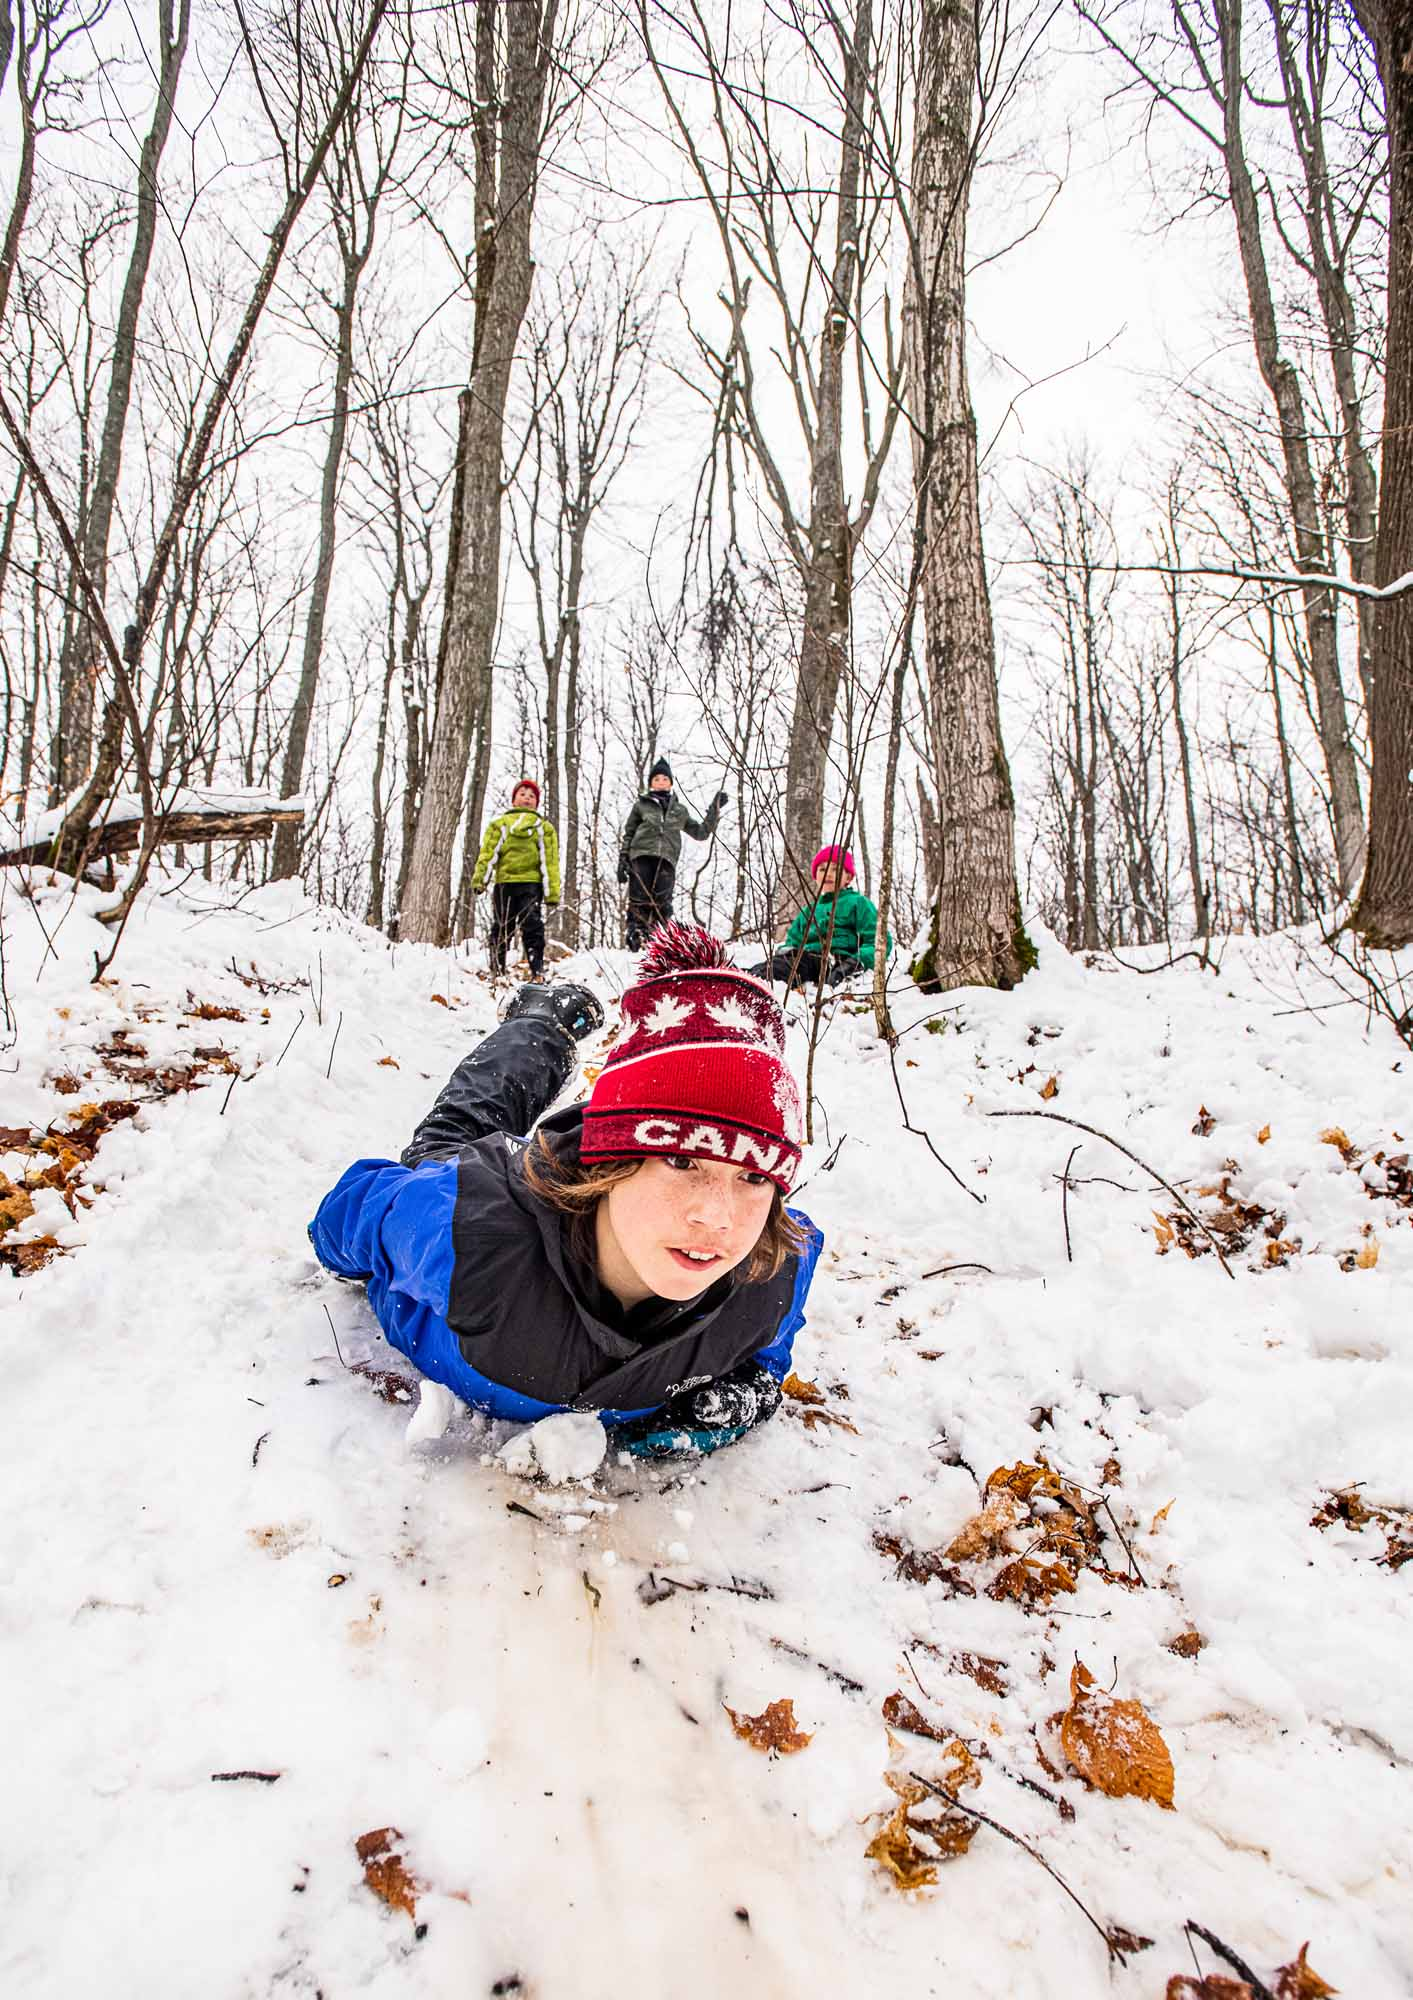 Nature-as-Teacher-Outdoor-Schools-Bring-Learning-Into-the-Elements-photo-by-Kristin-Schnelten-sliding-down-hill